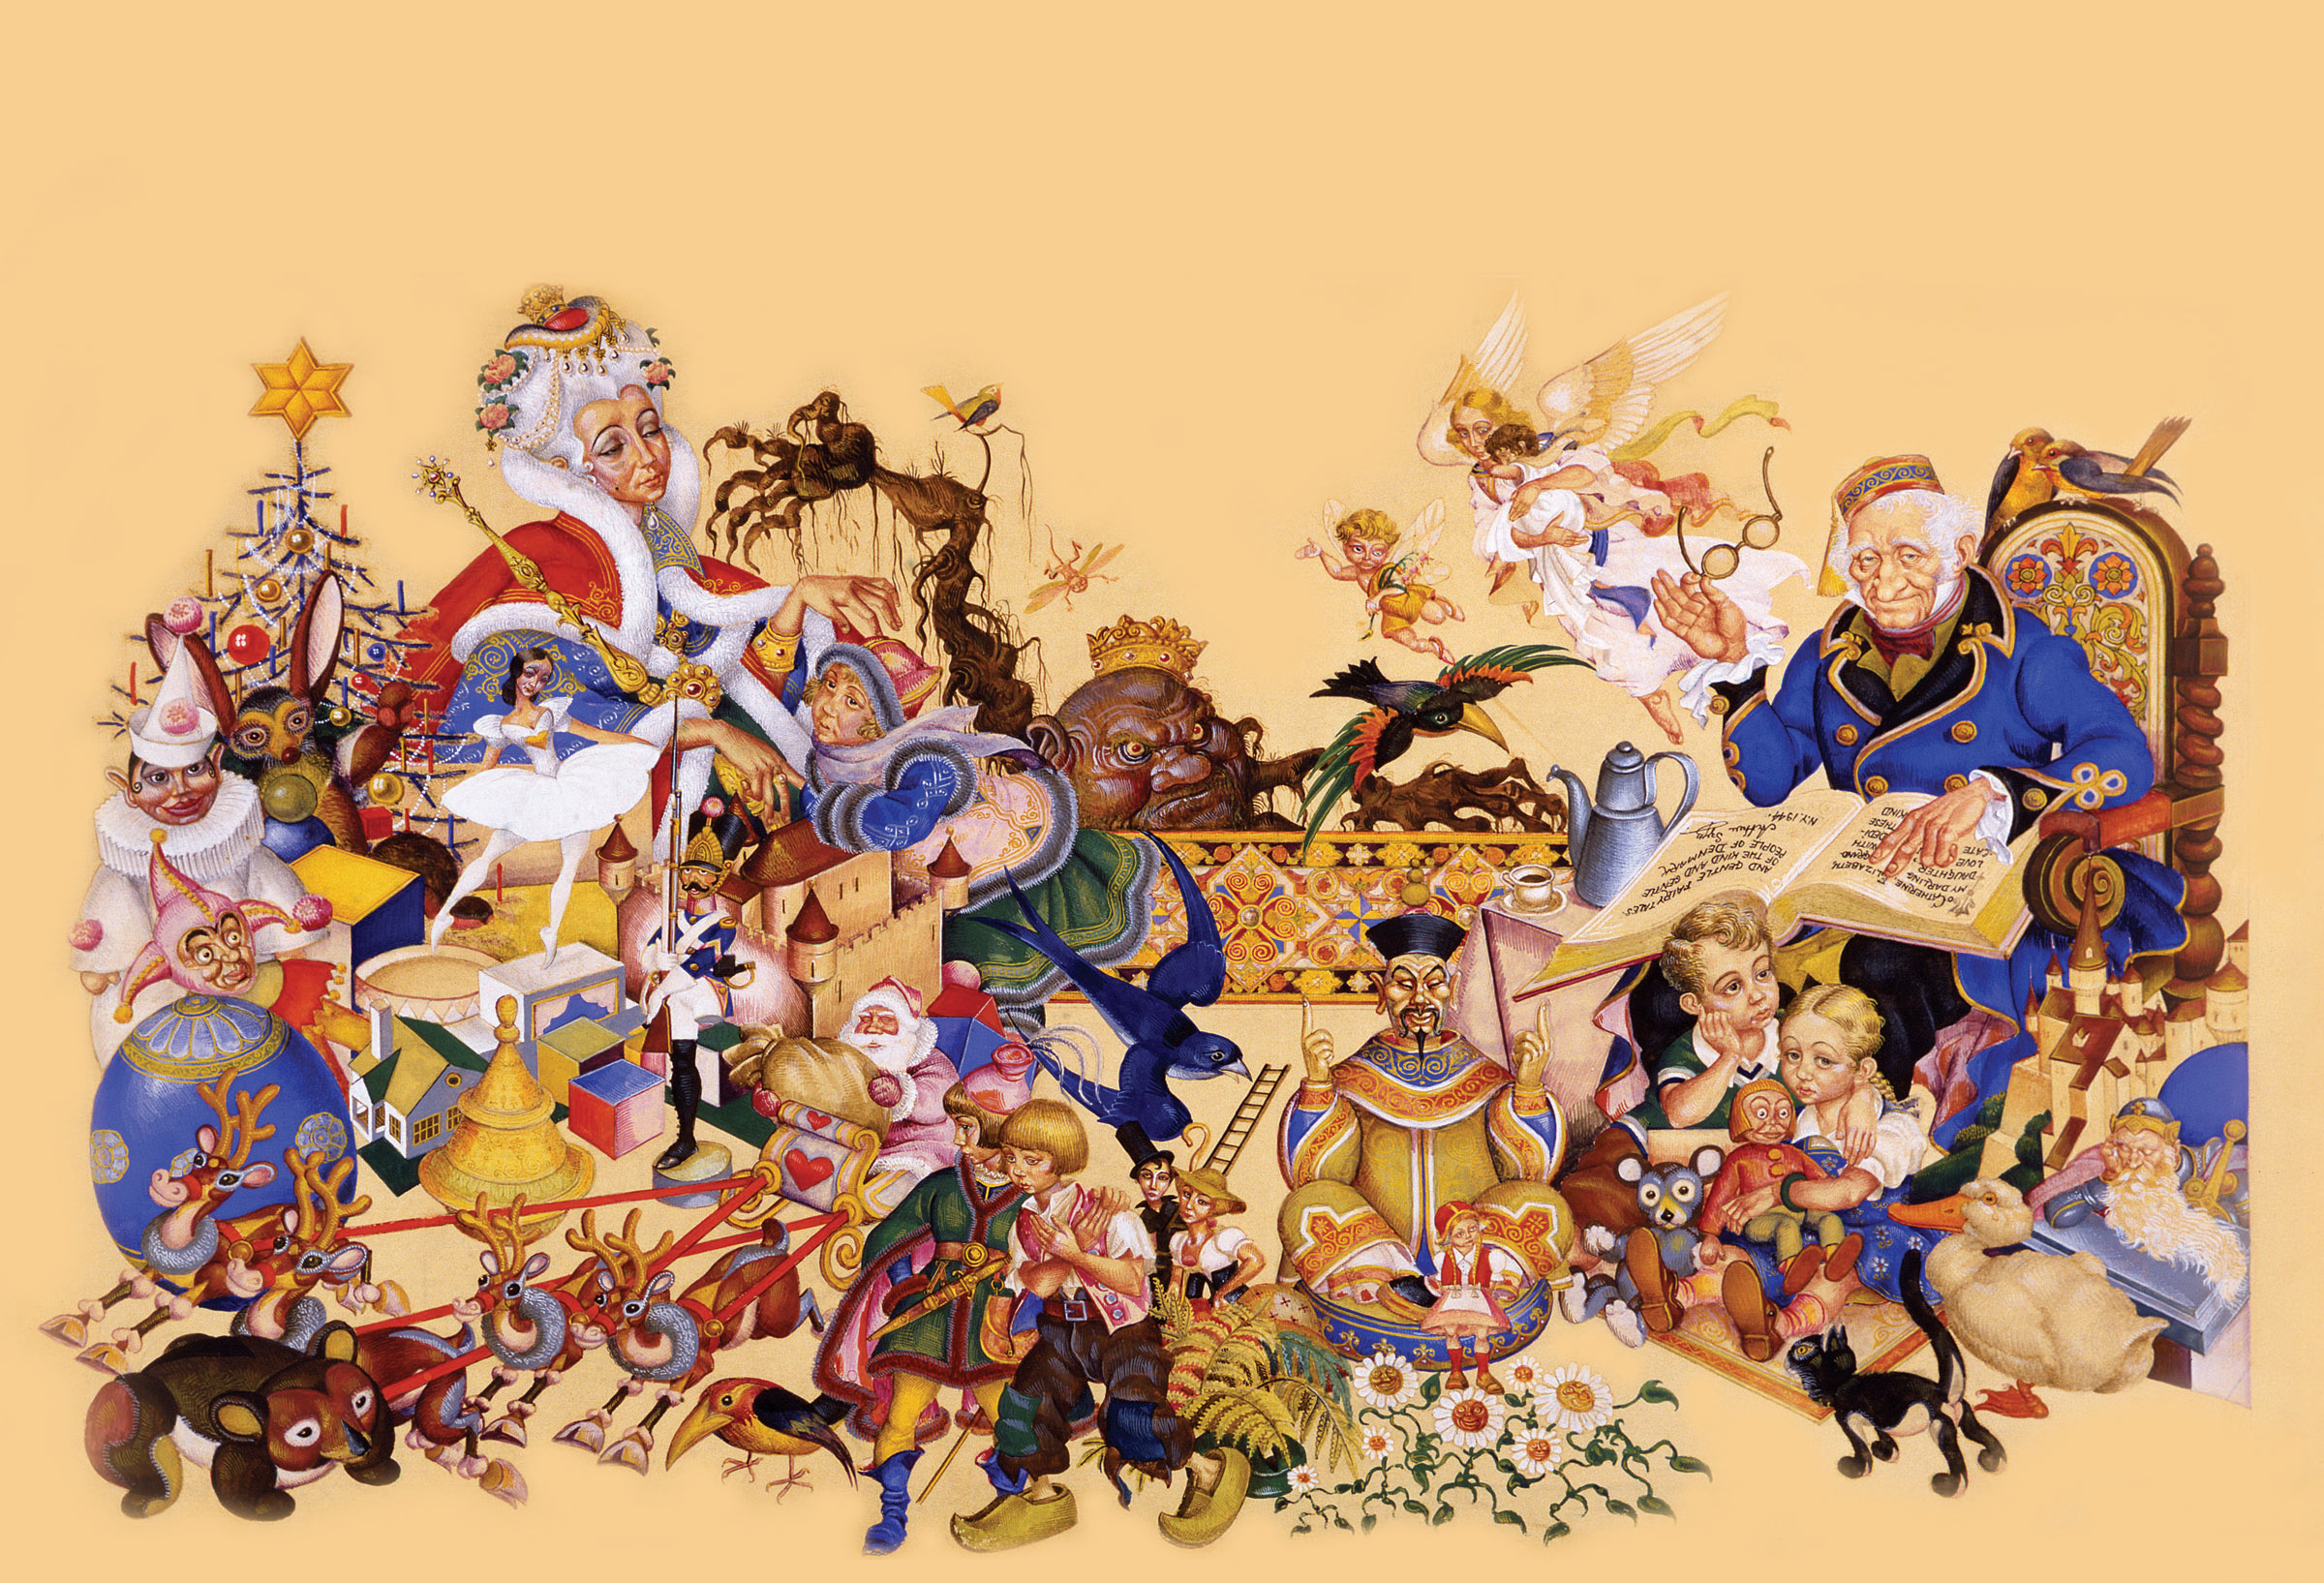 About Arthur Szyk | Biography | Caricaturist, Painter, Illustrator | United States of America ...